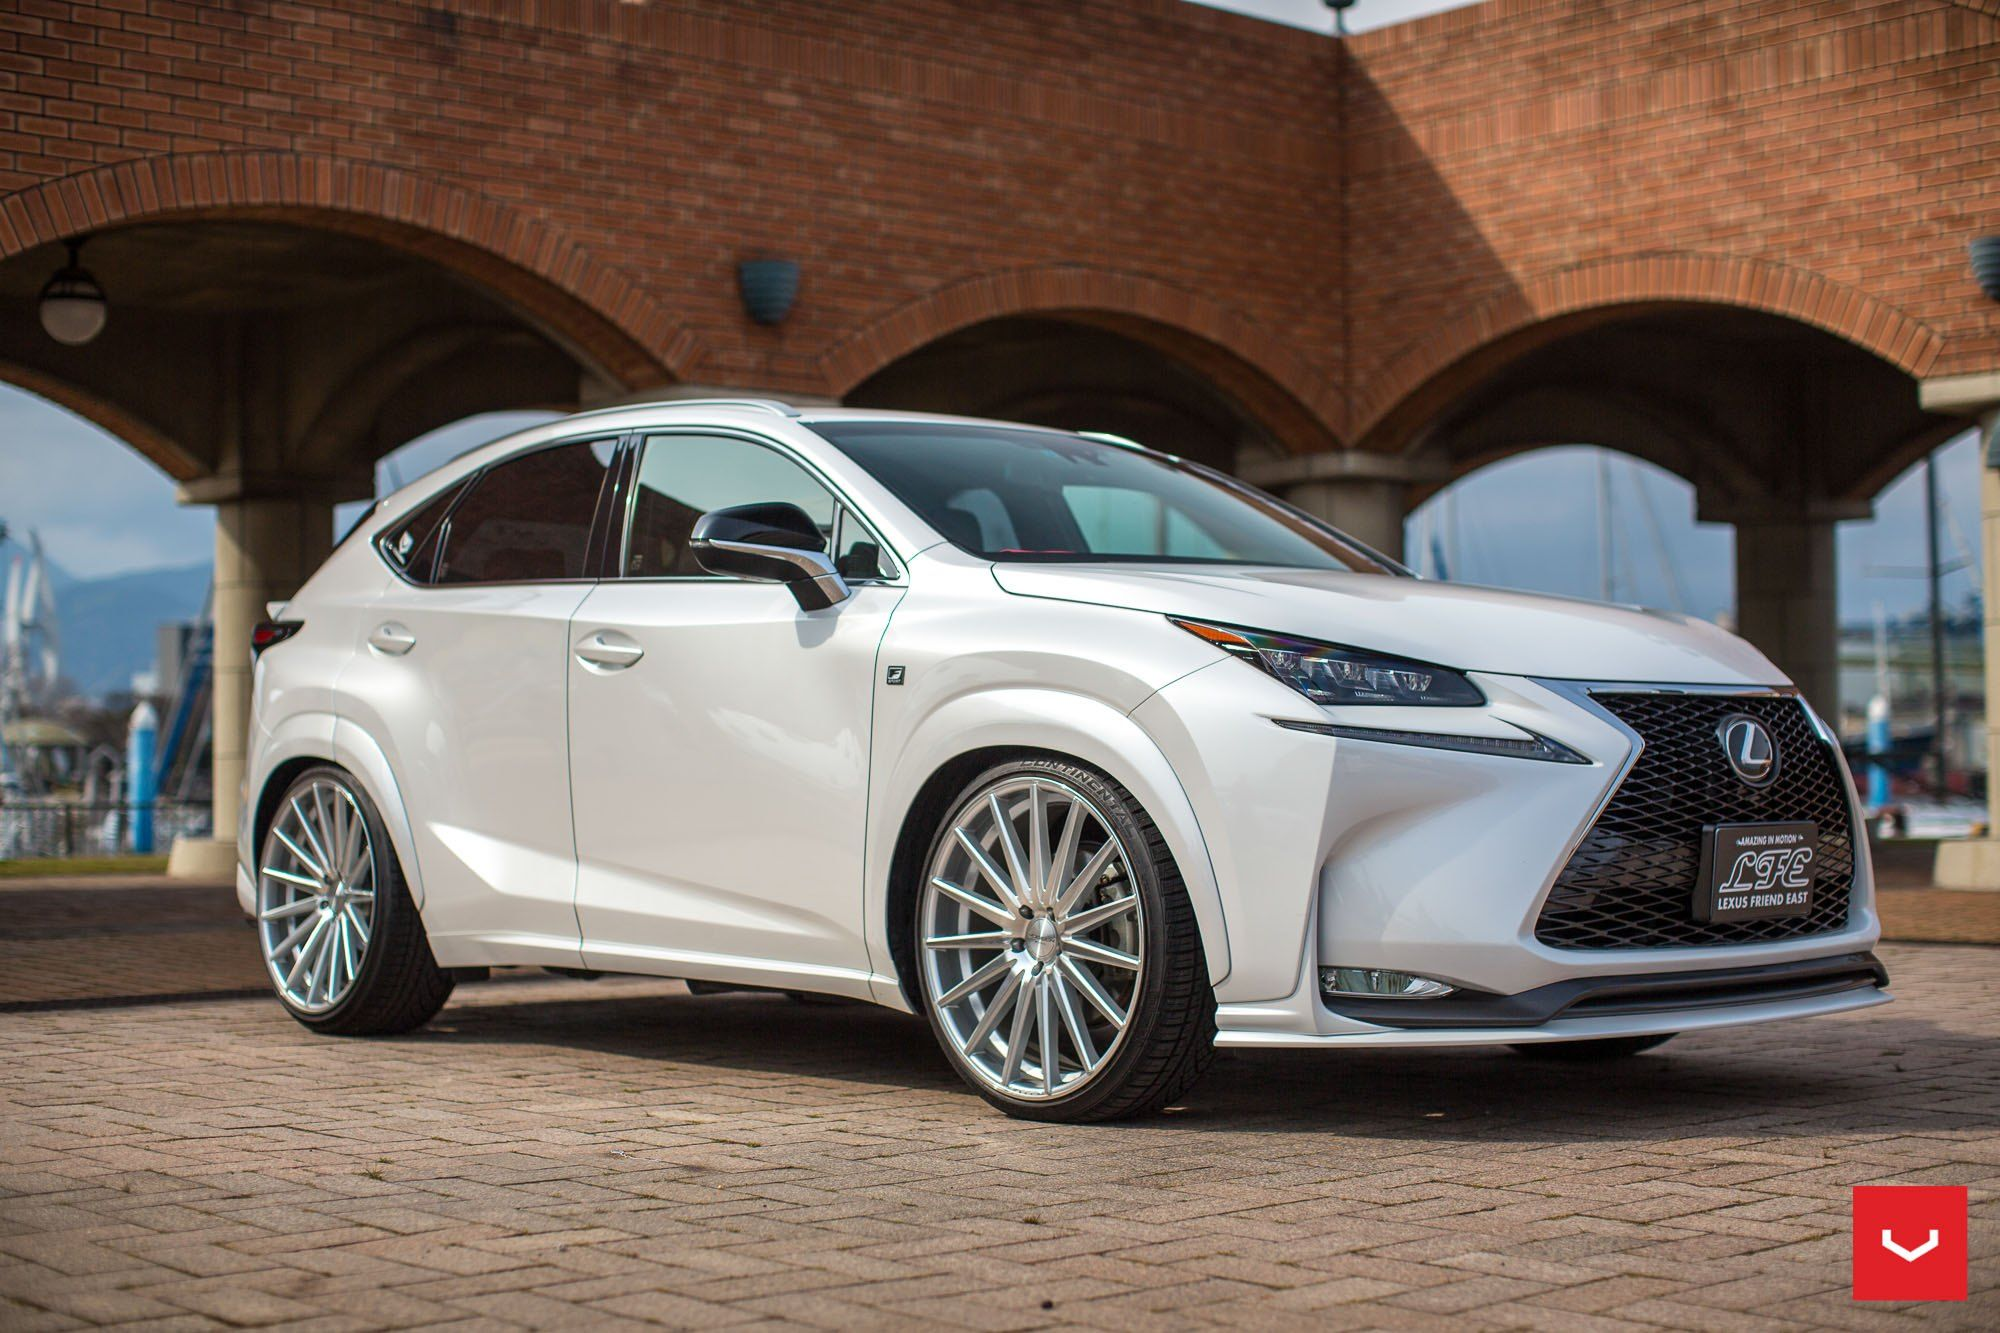 Classy Pearl White Lexus Nx With Lowered Suspension And Vossen Rims White Lexus Lexus Lexus Nx 200t